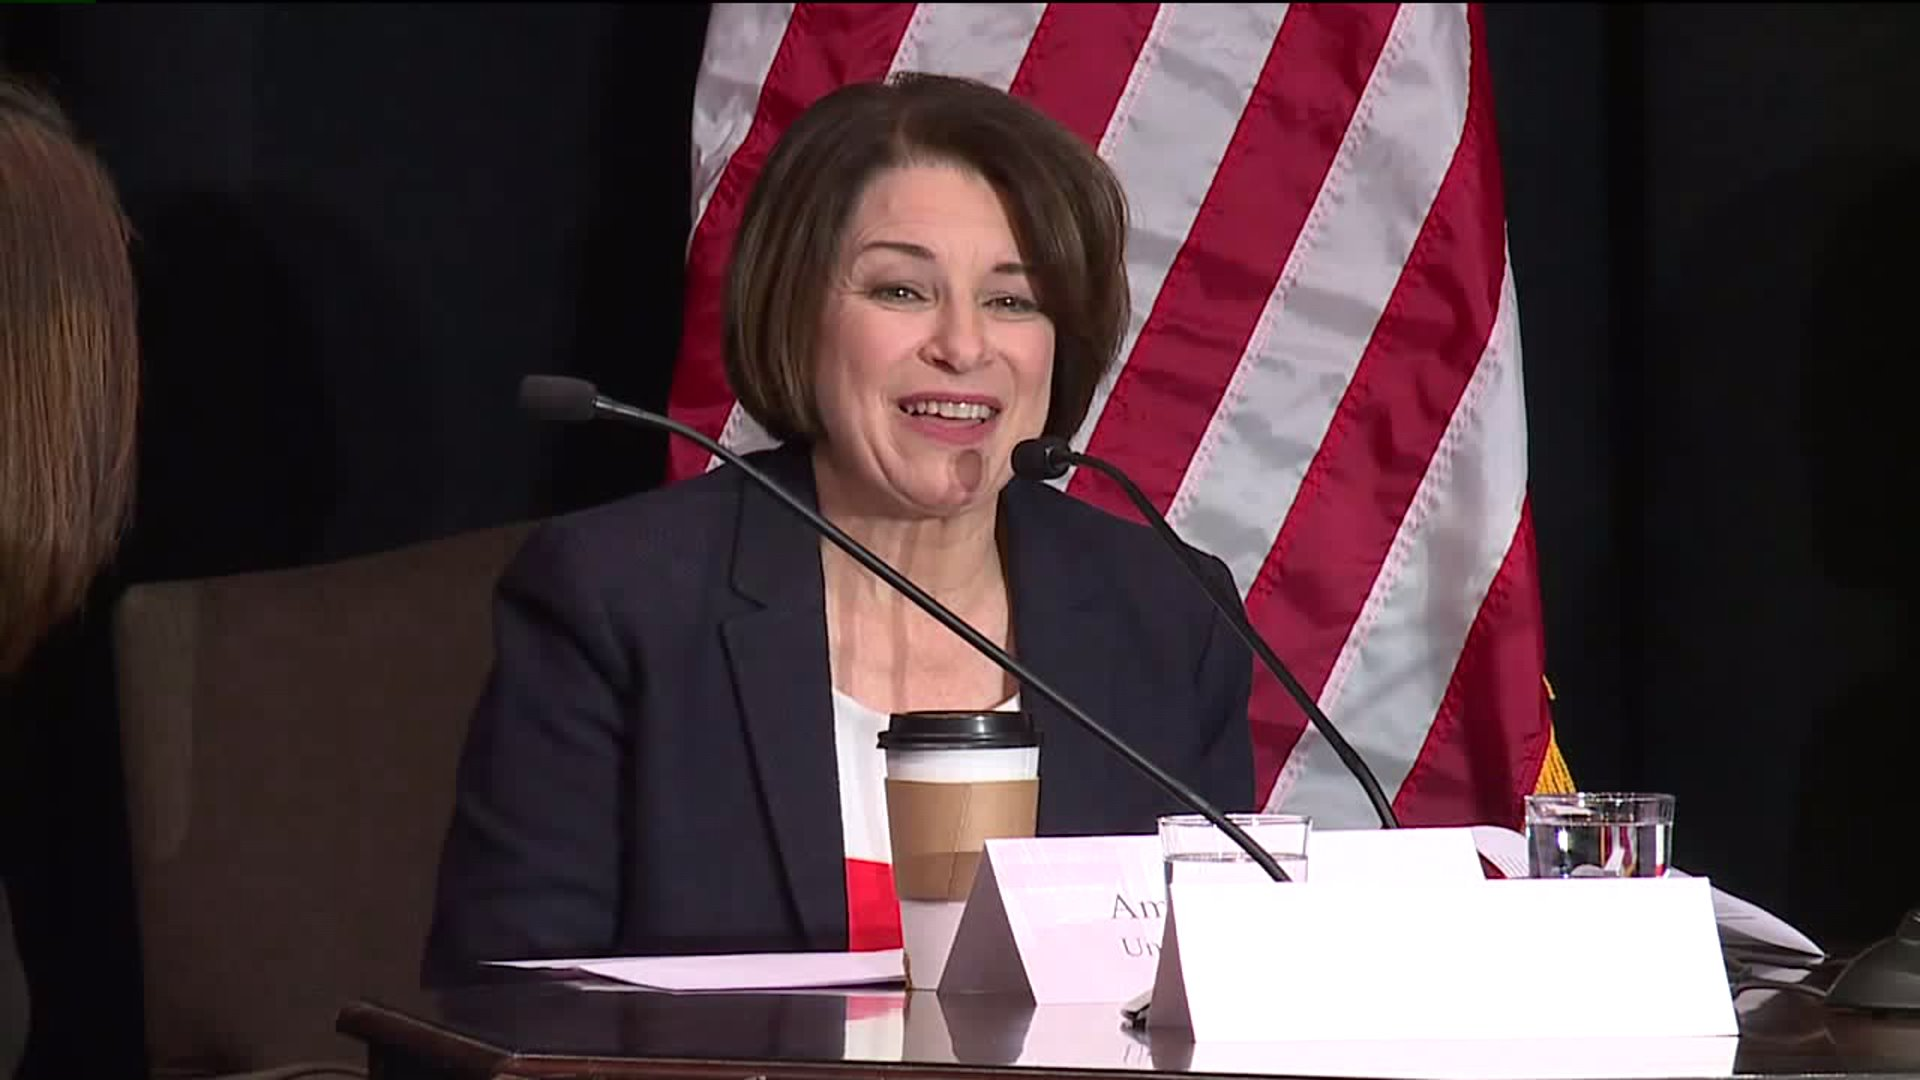 Sen. Amy Klobuchar visits the International Civil Rights Museum in Greensboro for a roundtable on voting rights on Feb. 27, 2020. (WGHP)